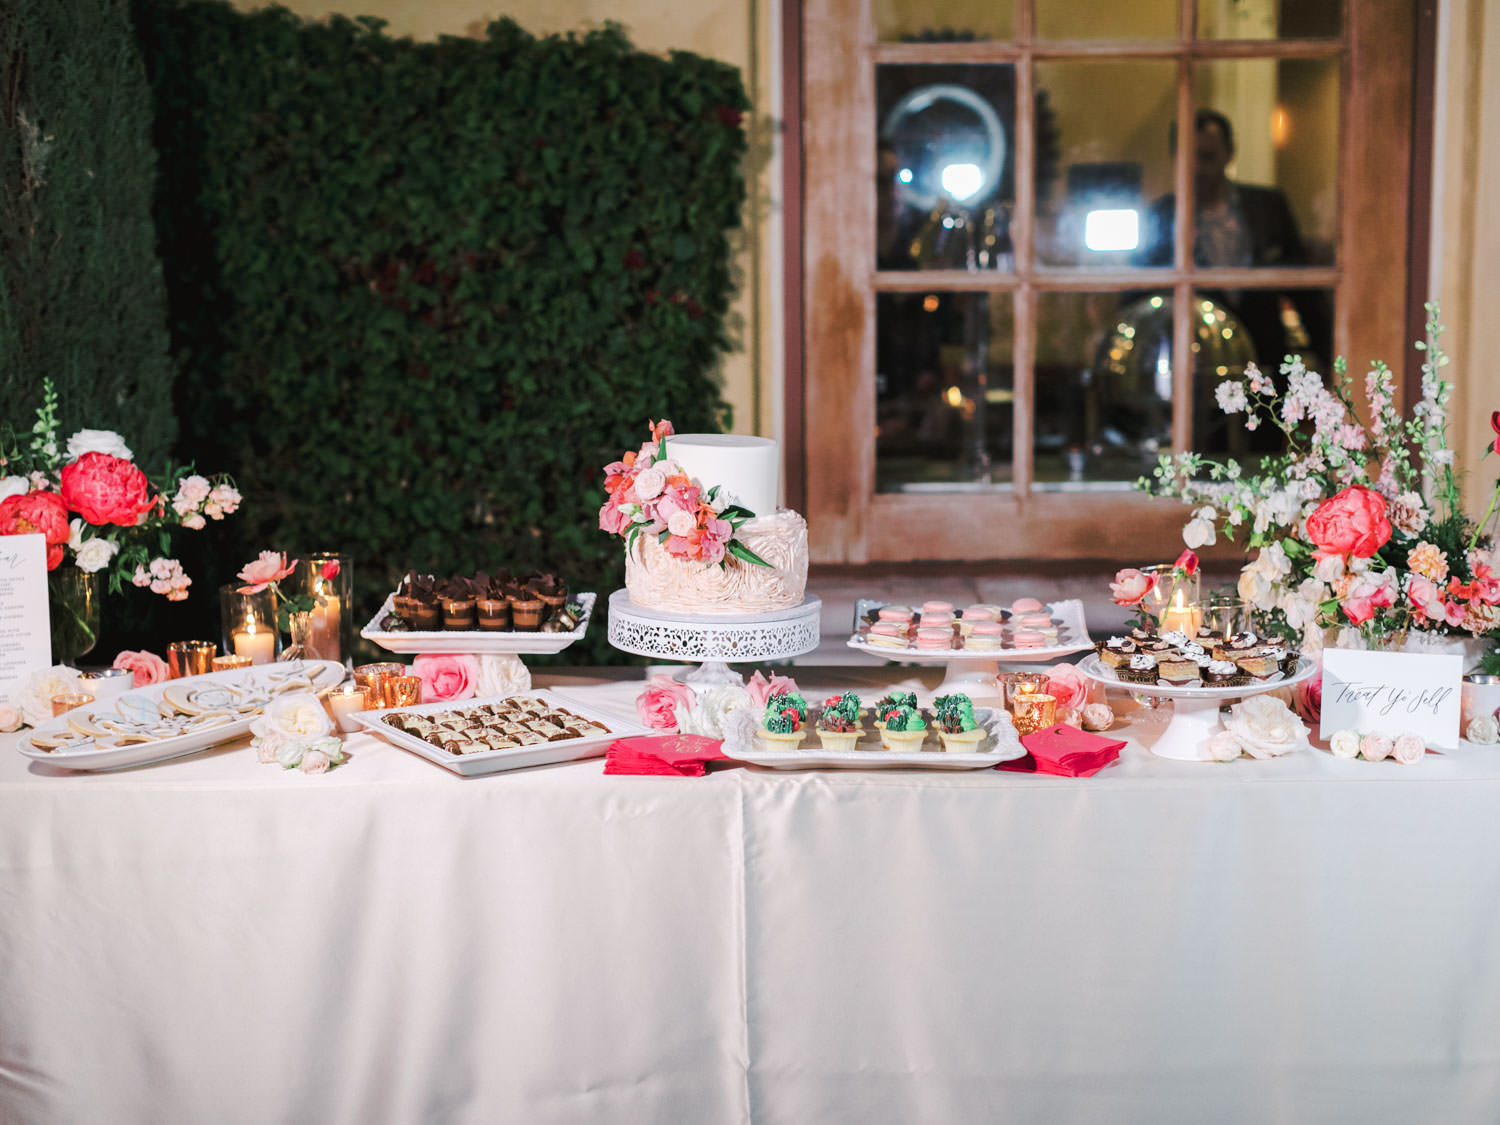 Dessert display on pink linens with various small desserts like cookies and cupcakes. Two tier wedding cake with blush floral icing on bottom and white top tier with cascading pink and ivory flowers. photography by Cavin Elizabeth.